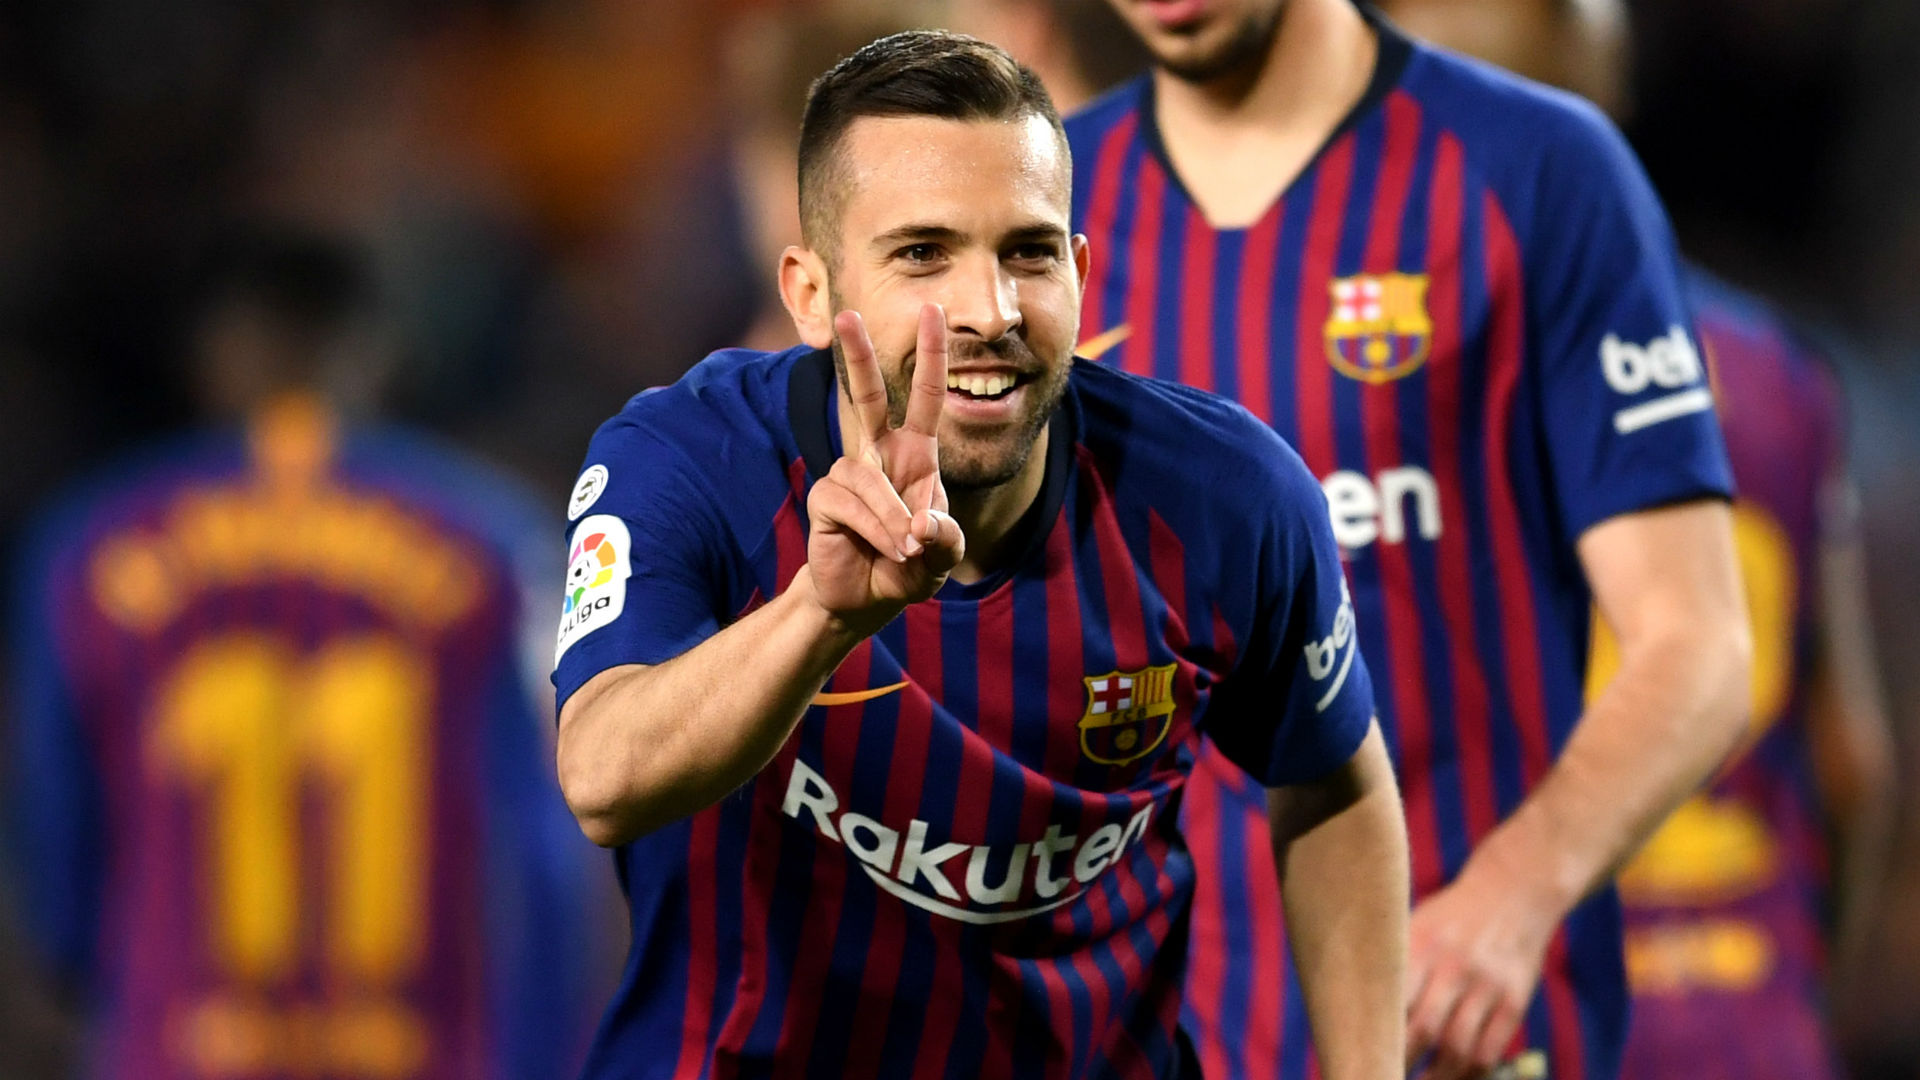 Man United win made Sociedad tough, says Barca's Jordi Alba